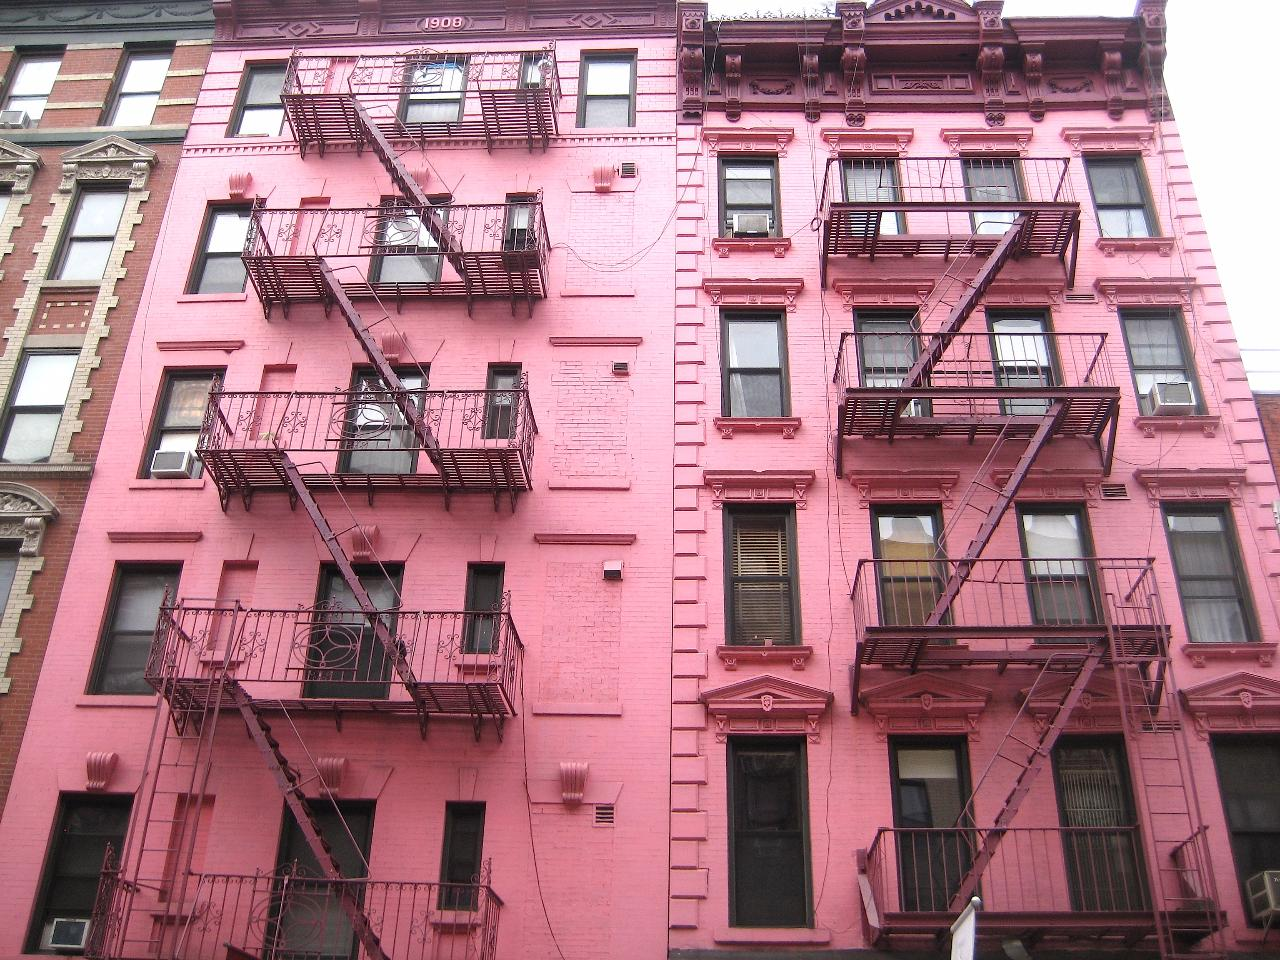 The Pink Building pink stories